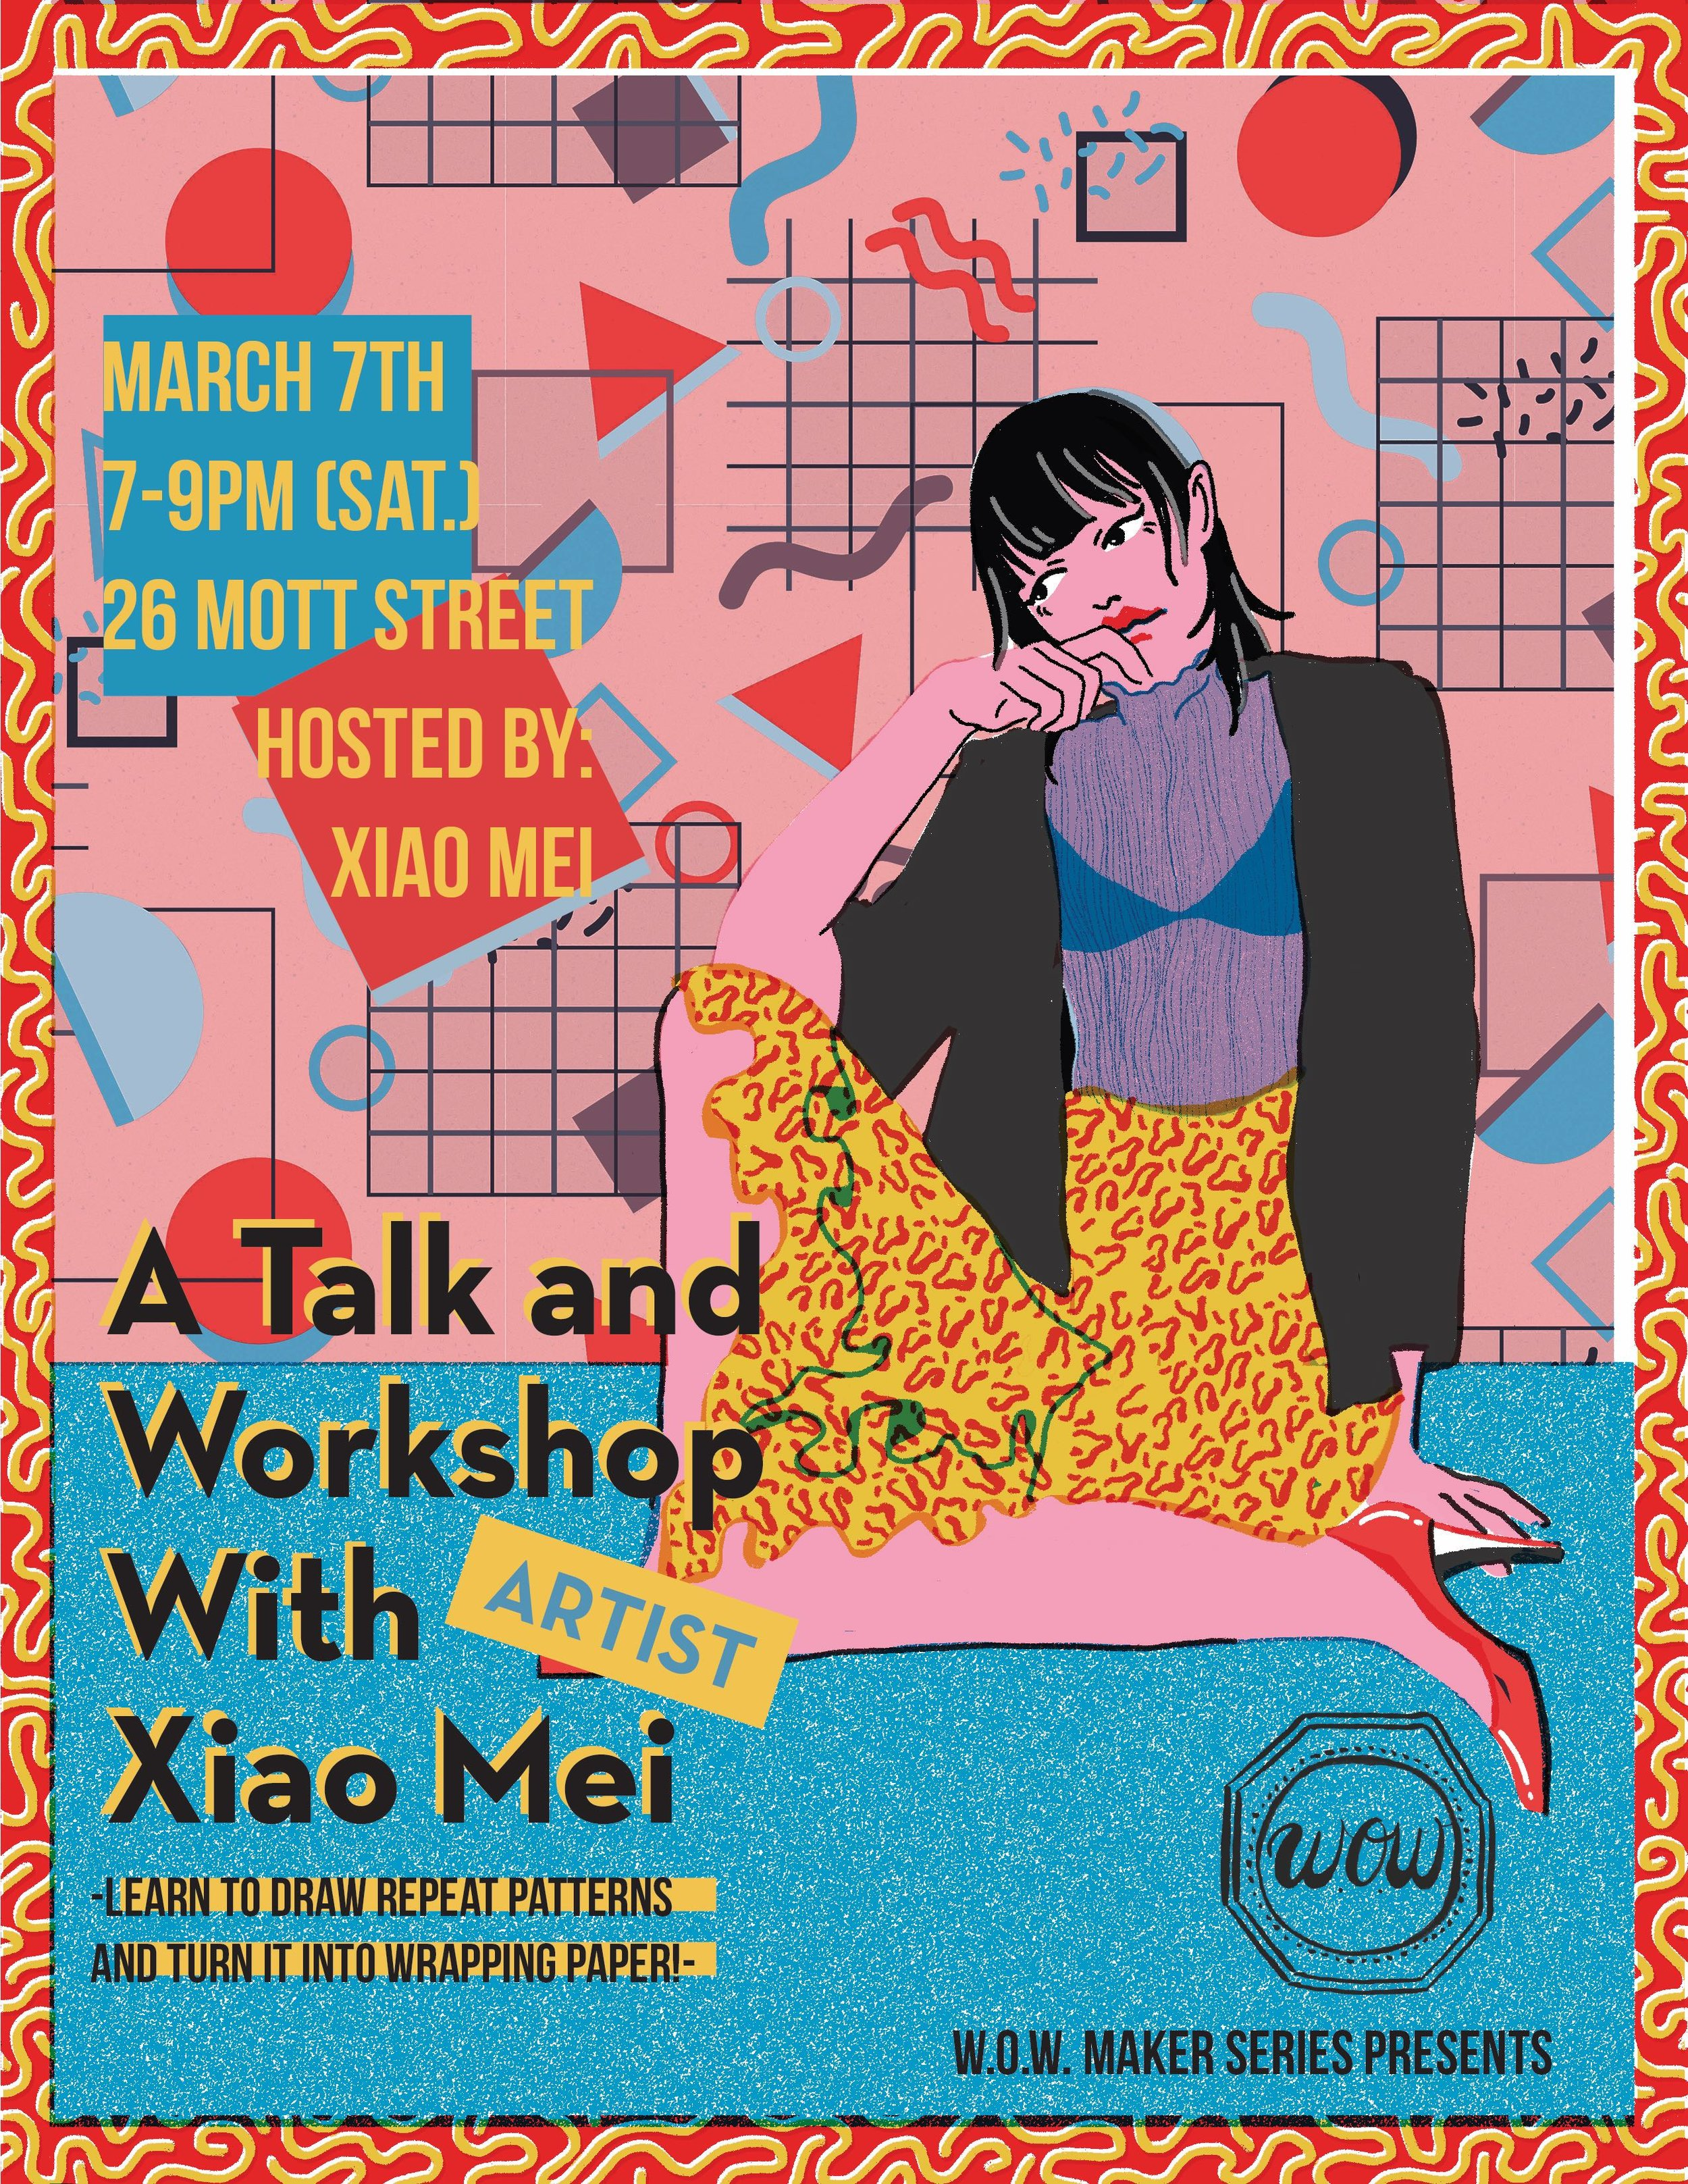 2019.03.07_Makers Series_Xiao Mei.jpg